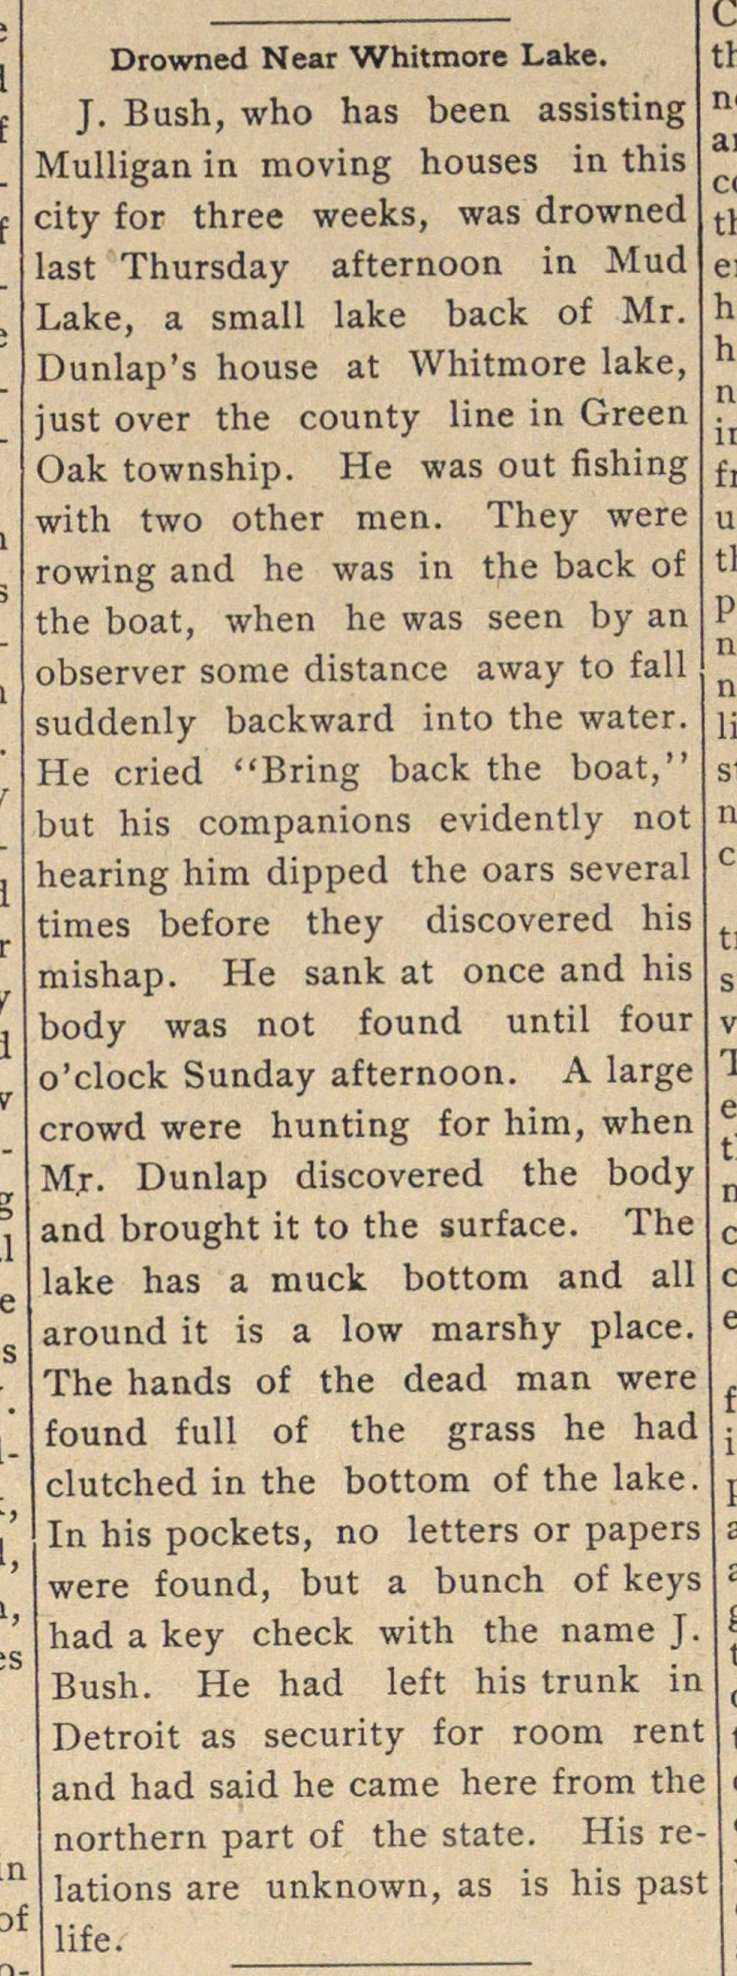 Drowned Near Whitmore Lake image